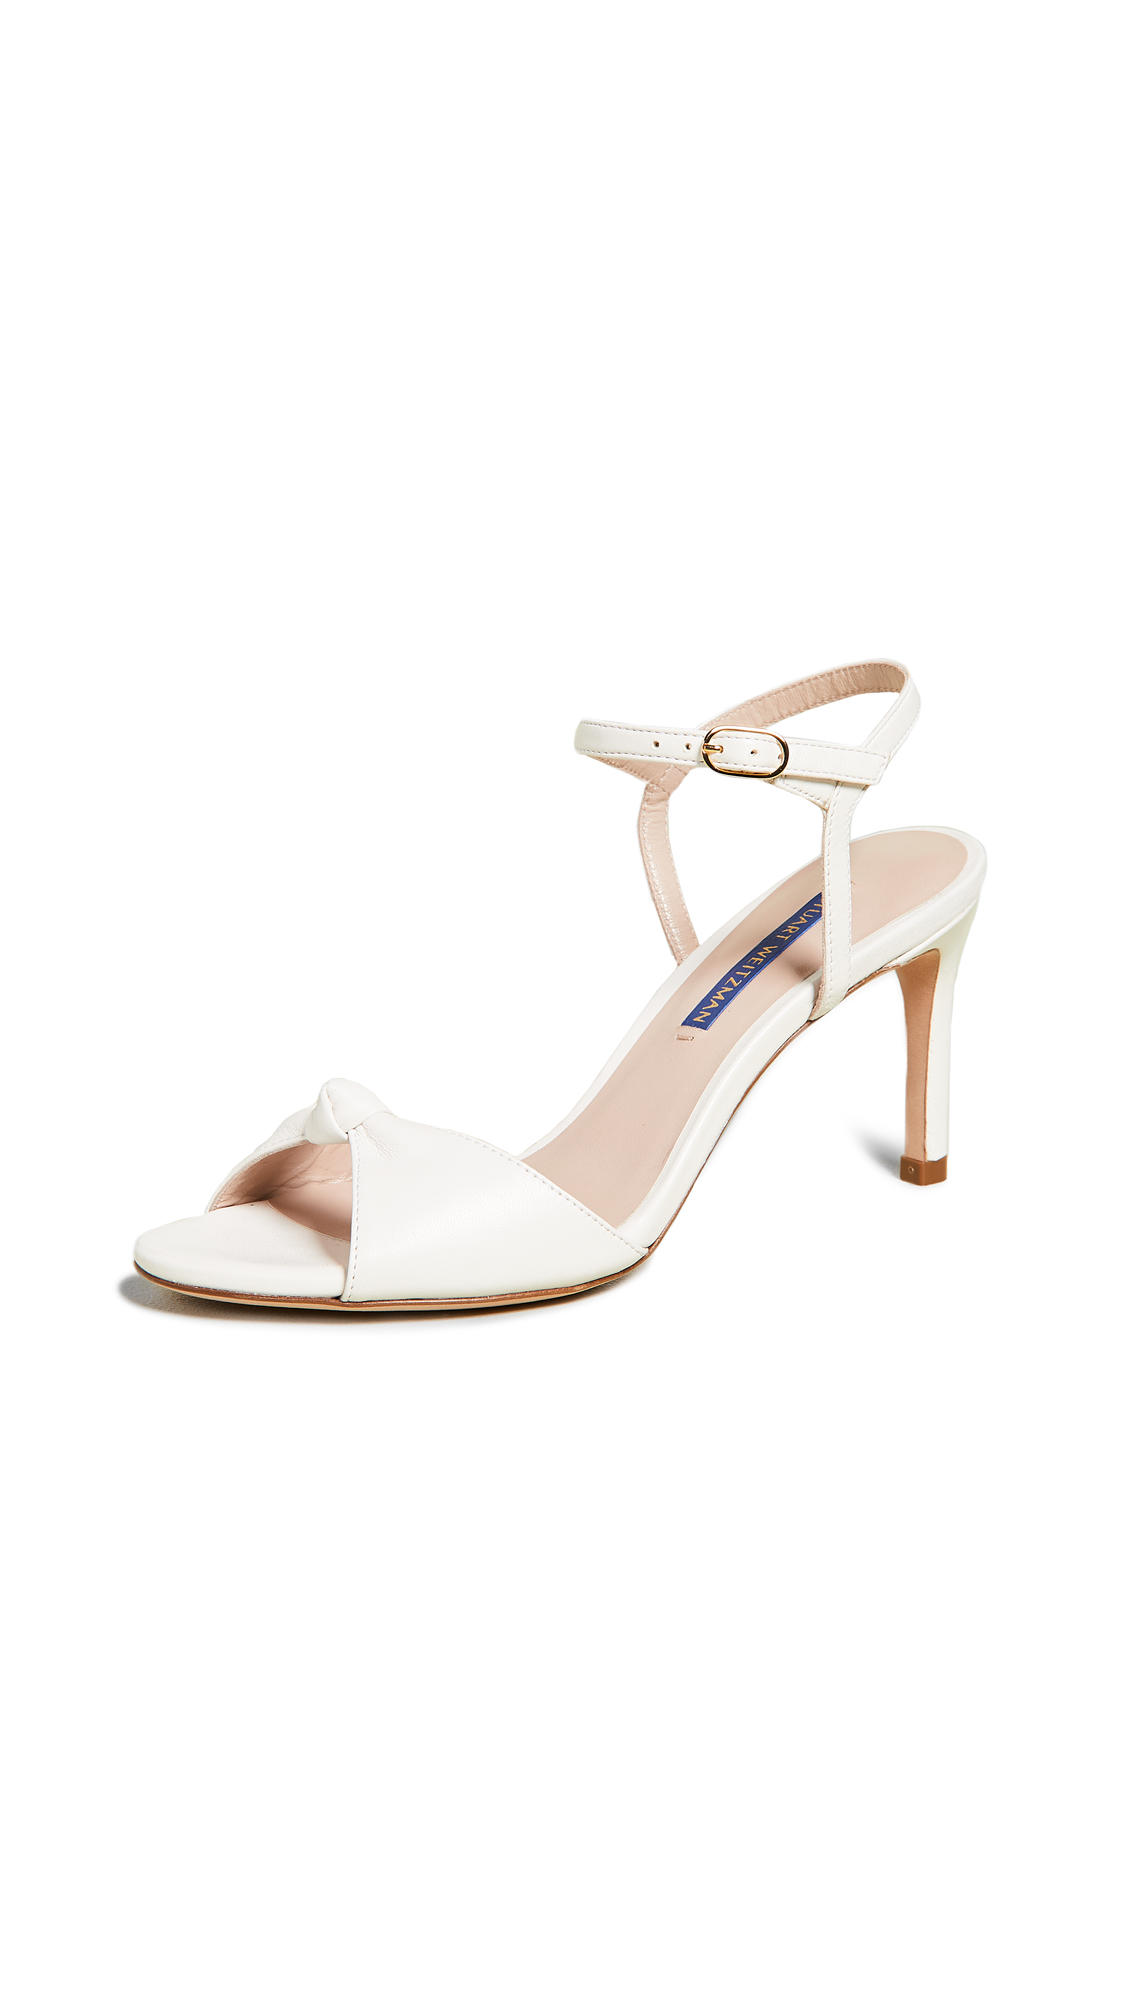 Stuart Weitzman Gloria 80mm Sandals - Cream